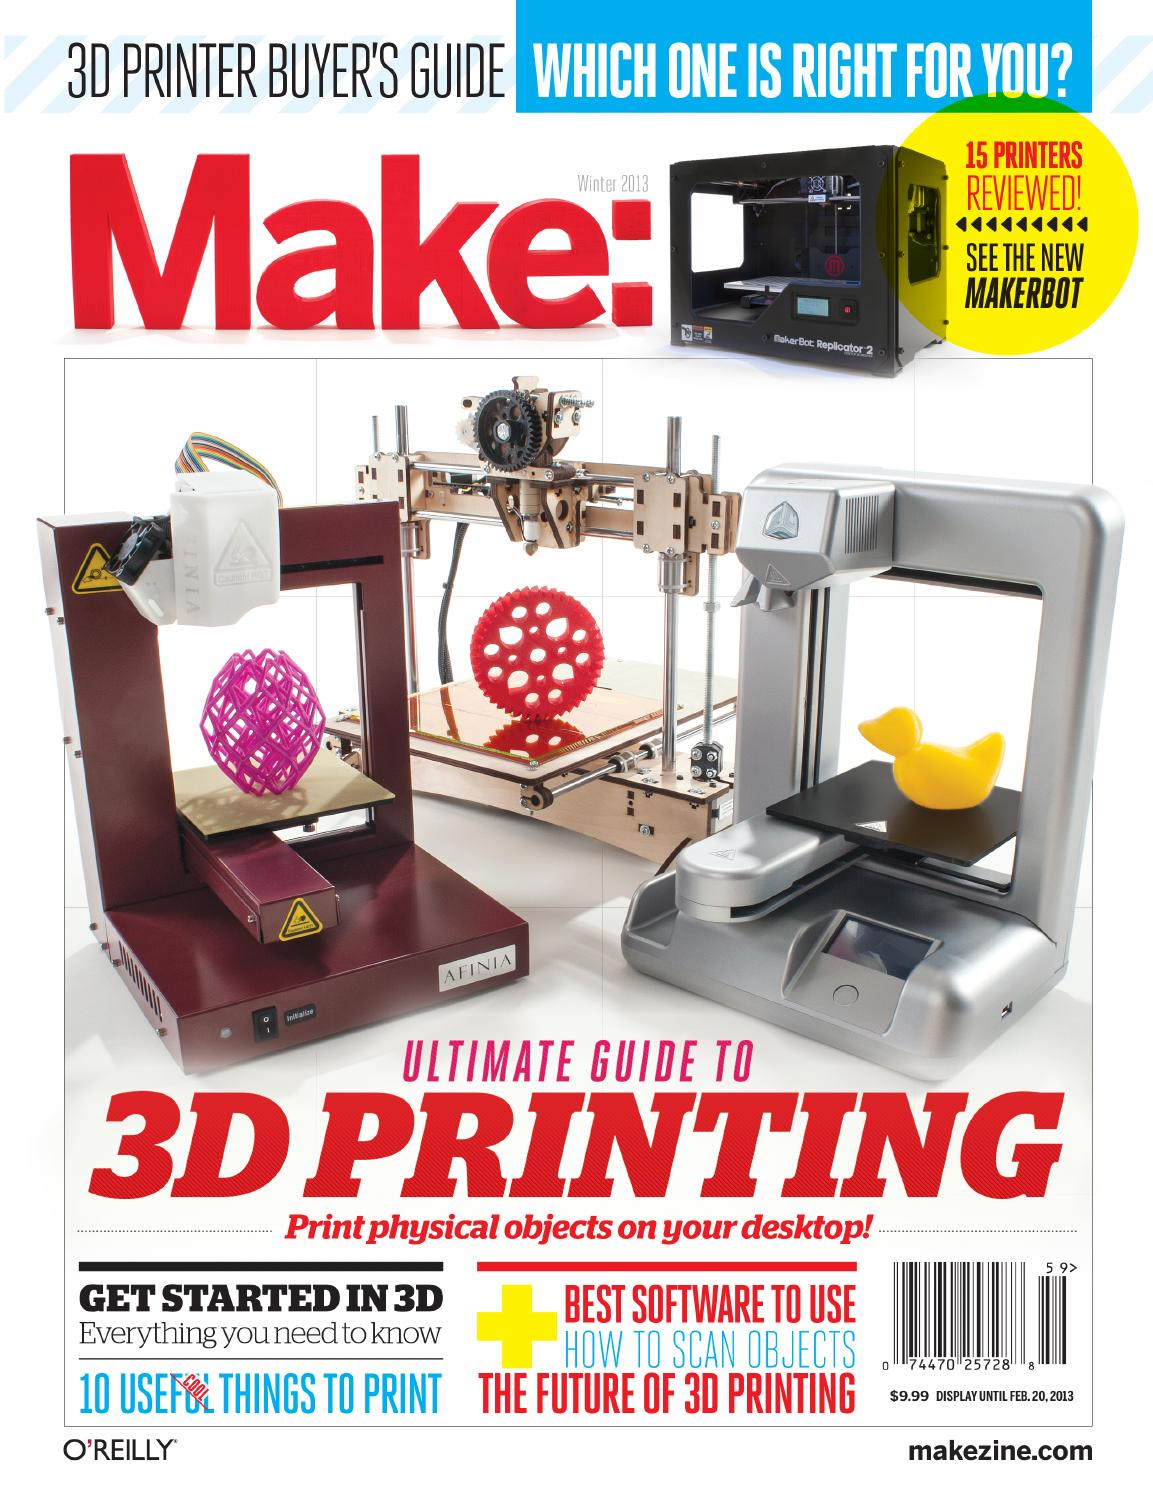 Make Ultimate Guide To 3d Printing 2013 By Ghotro Issuu Circuit Bent Modified Toy Festival Ponoko